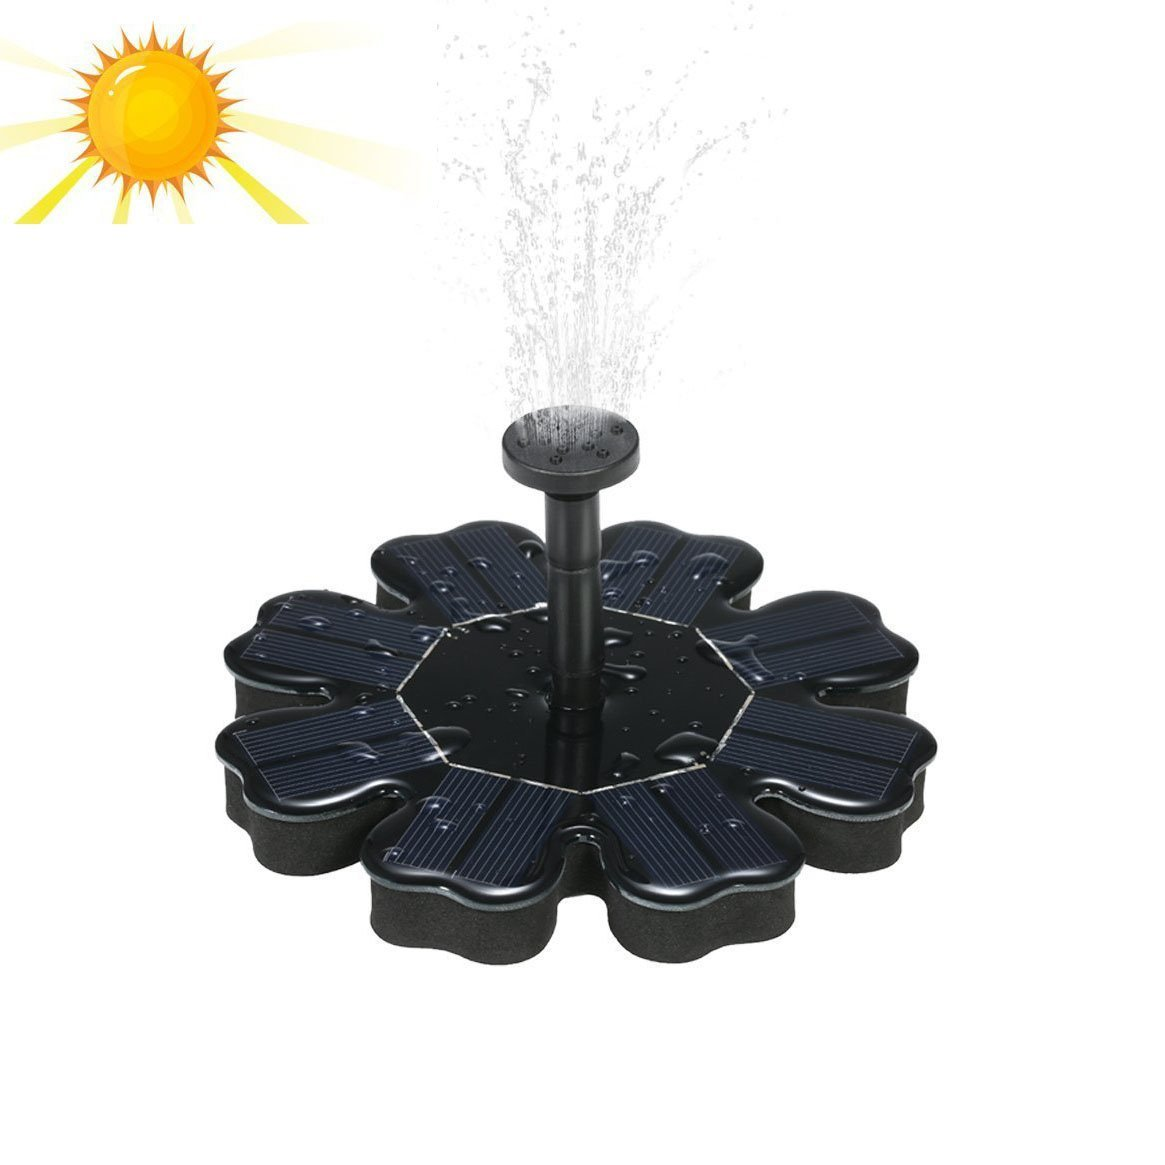 Haichen Solar Fountain Pond Pump Bird Bath Fountains Outdoor Watering Submersible Water Floating Pump Kit with Different Spray Heads for Fish Tank Aquarium Pond Pool Garden Decoration